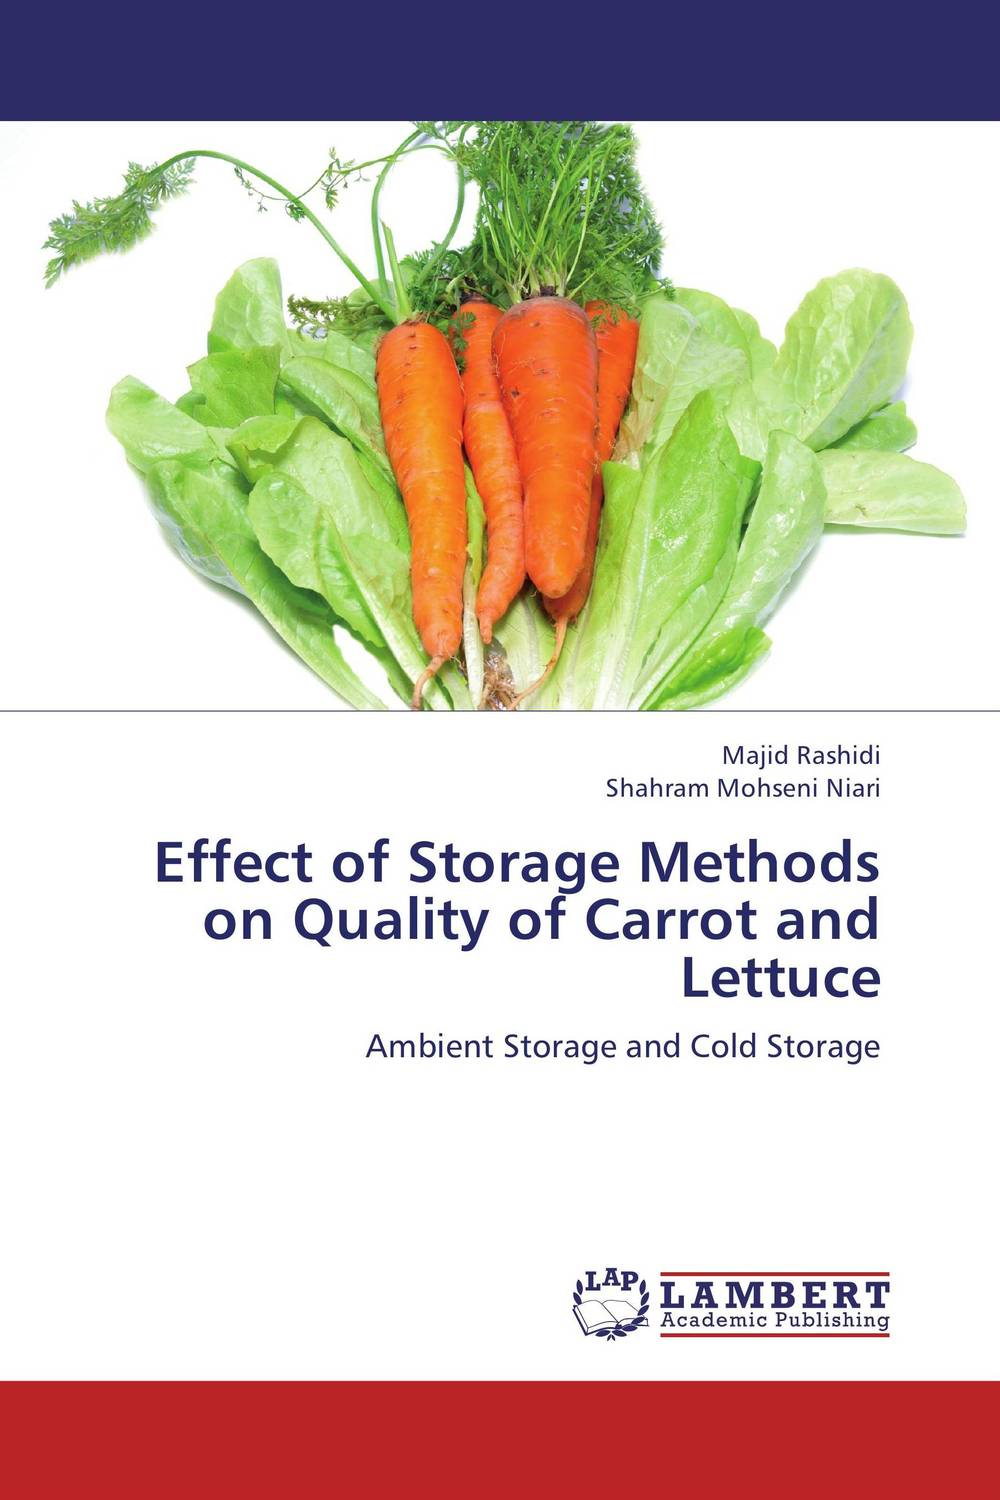 Effect of Storage Methods on Quality of Carrot and Lettuce belousov a security features of banknotes and other documents methods of authentication manual денежные билеты бланки ценных бумаг и документов